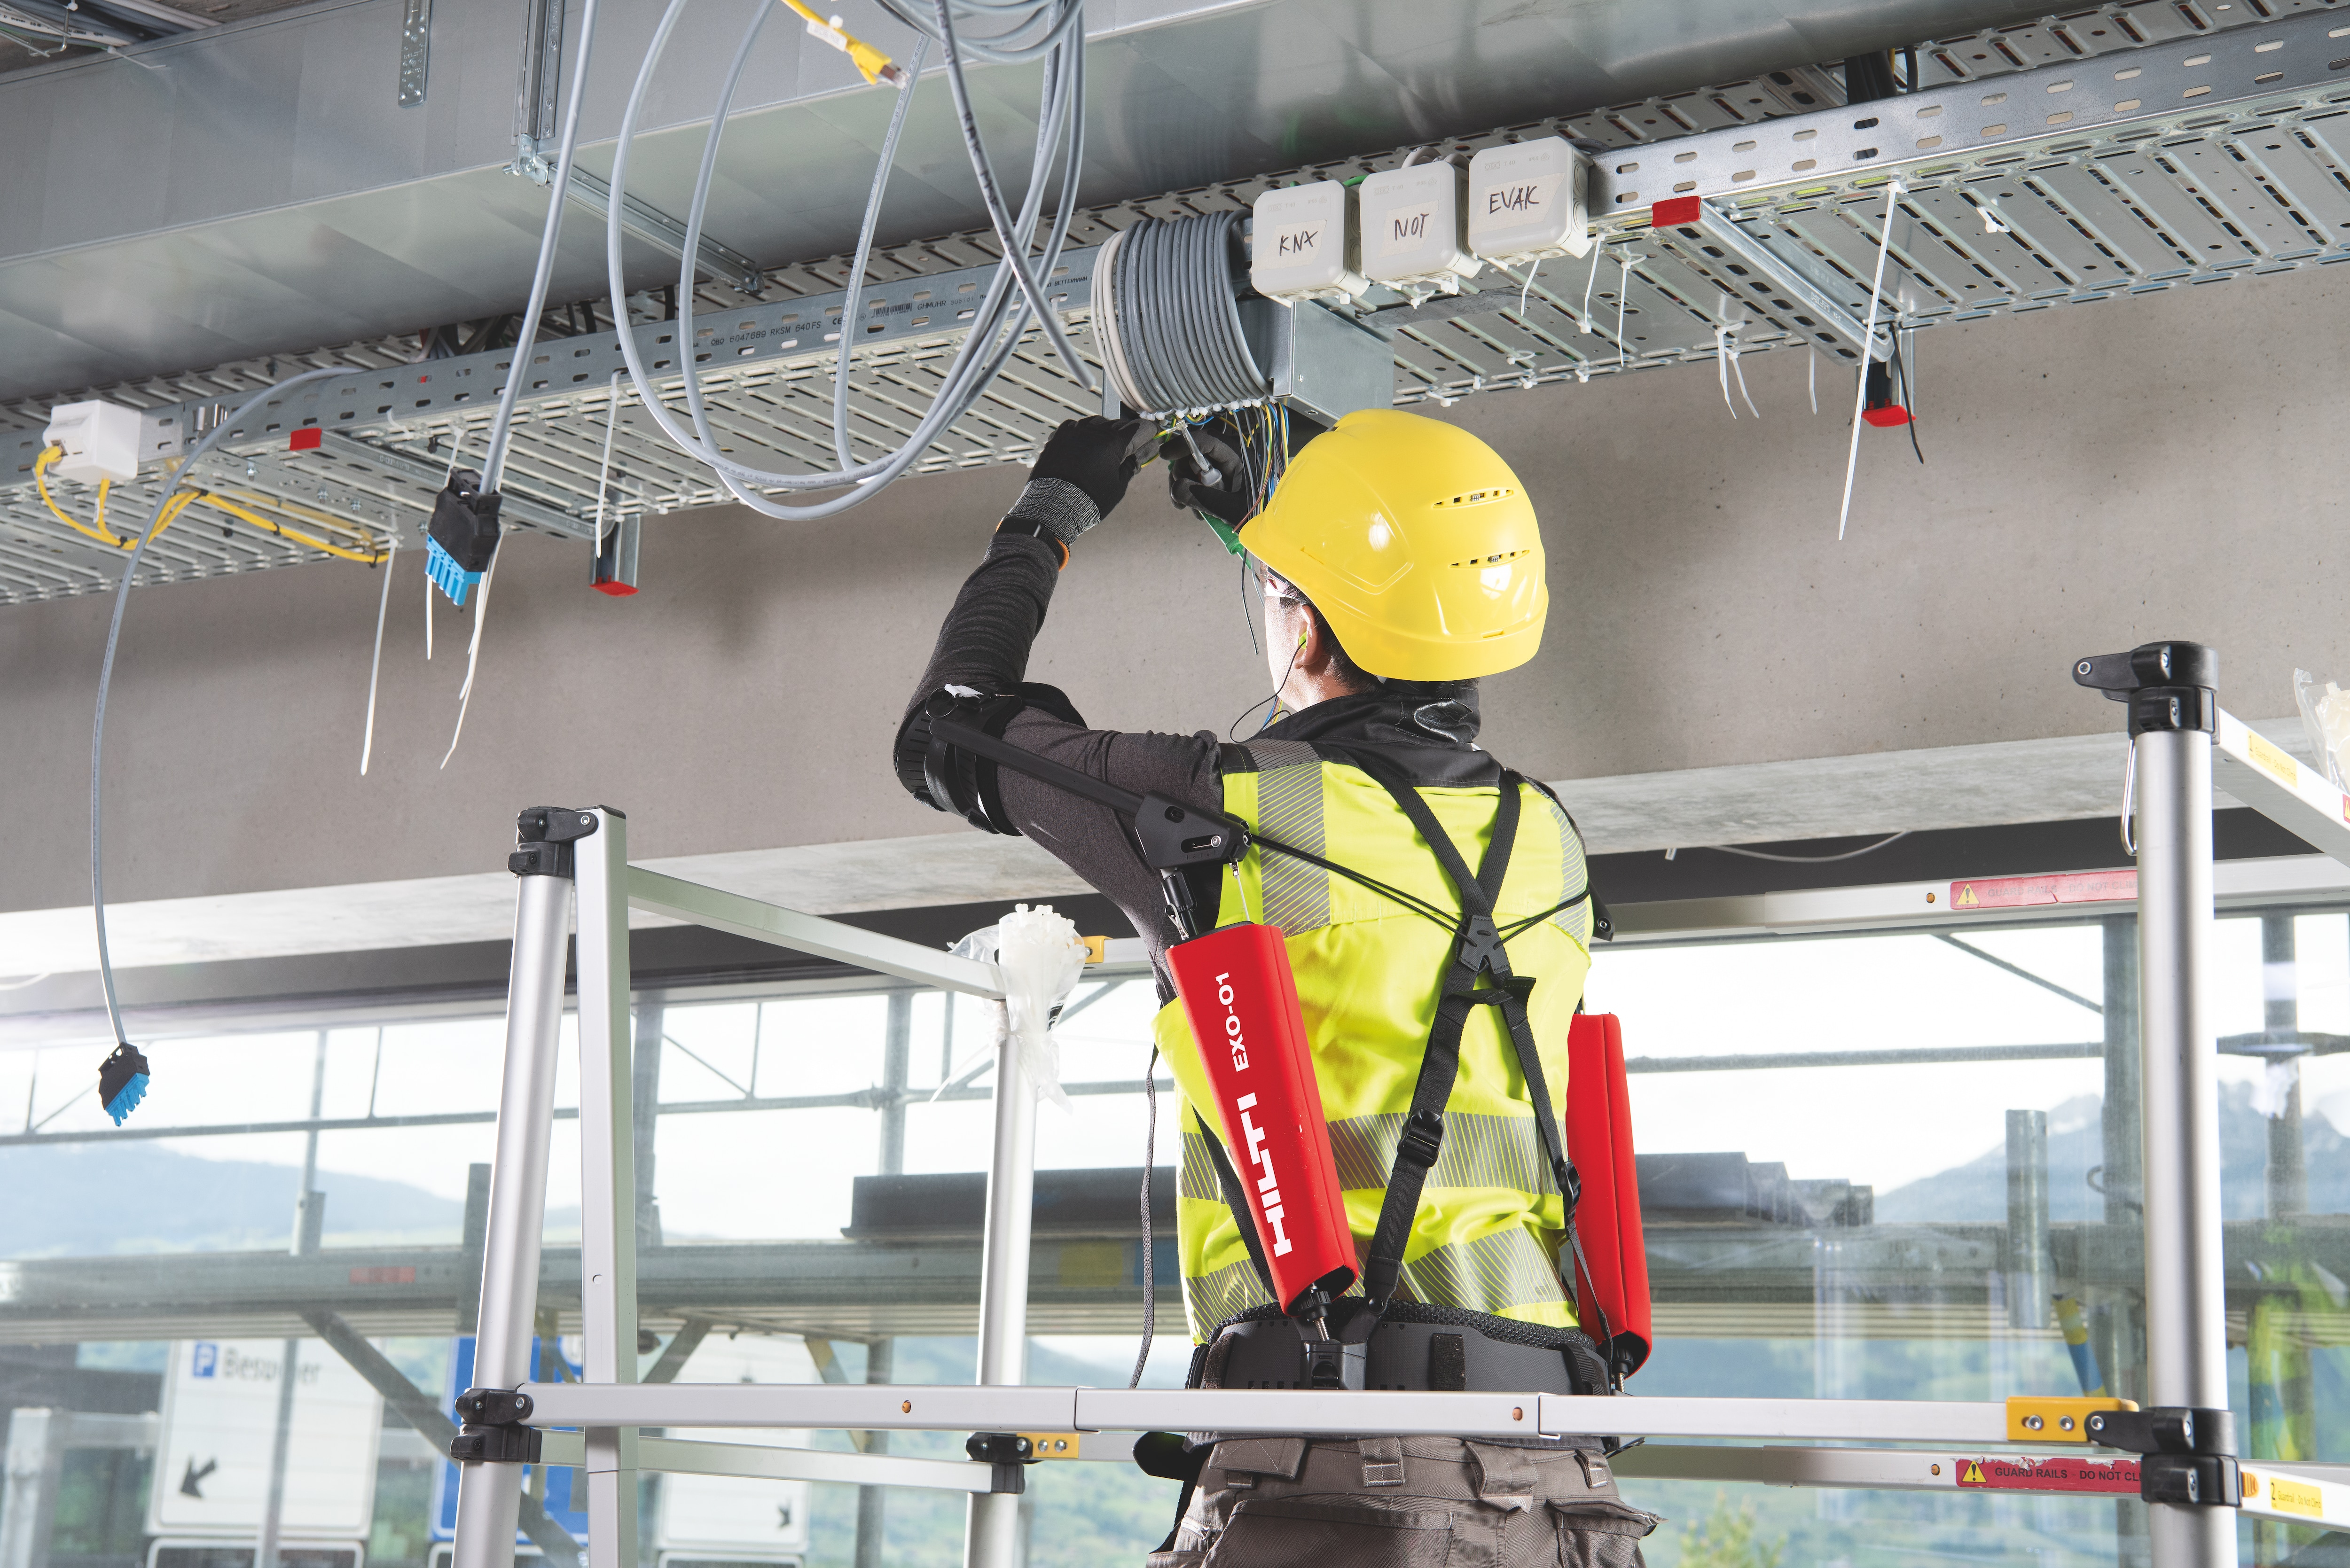 Exoskeleton to relieve strain on the shoulders and arms during overhead installation work